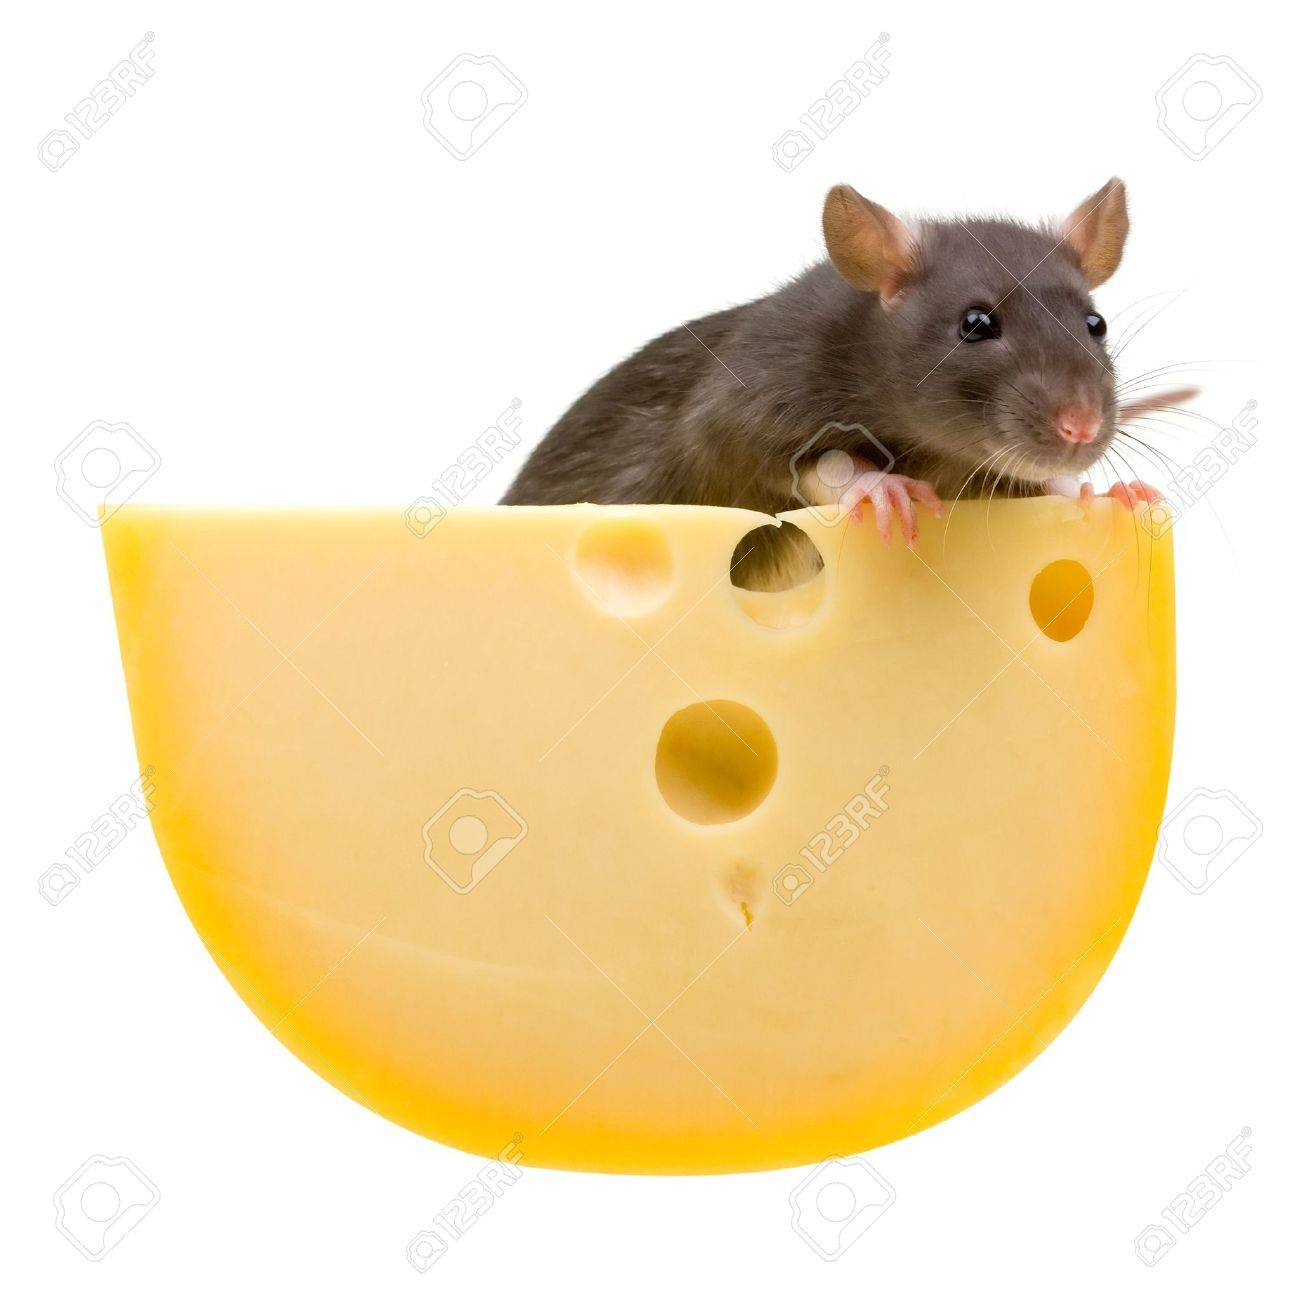 Funny rat and cheese isolated on white background Stock Photo - 4904415